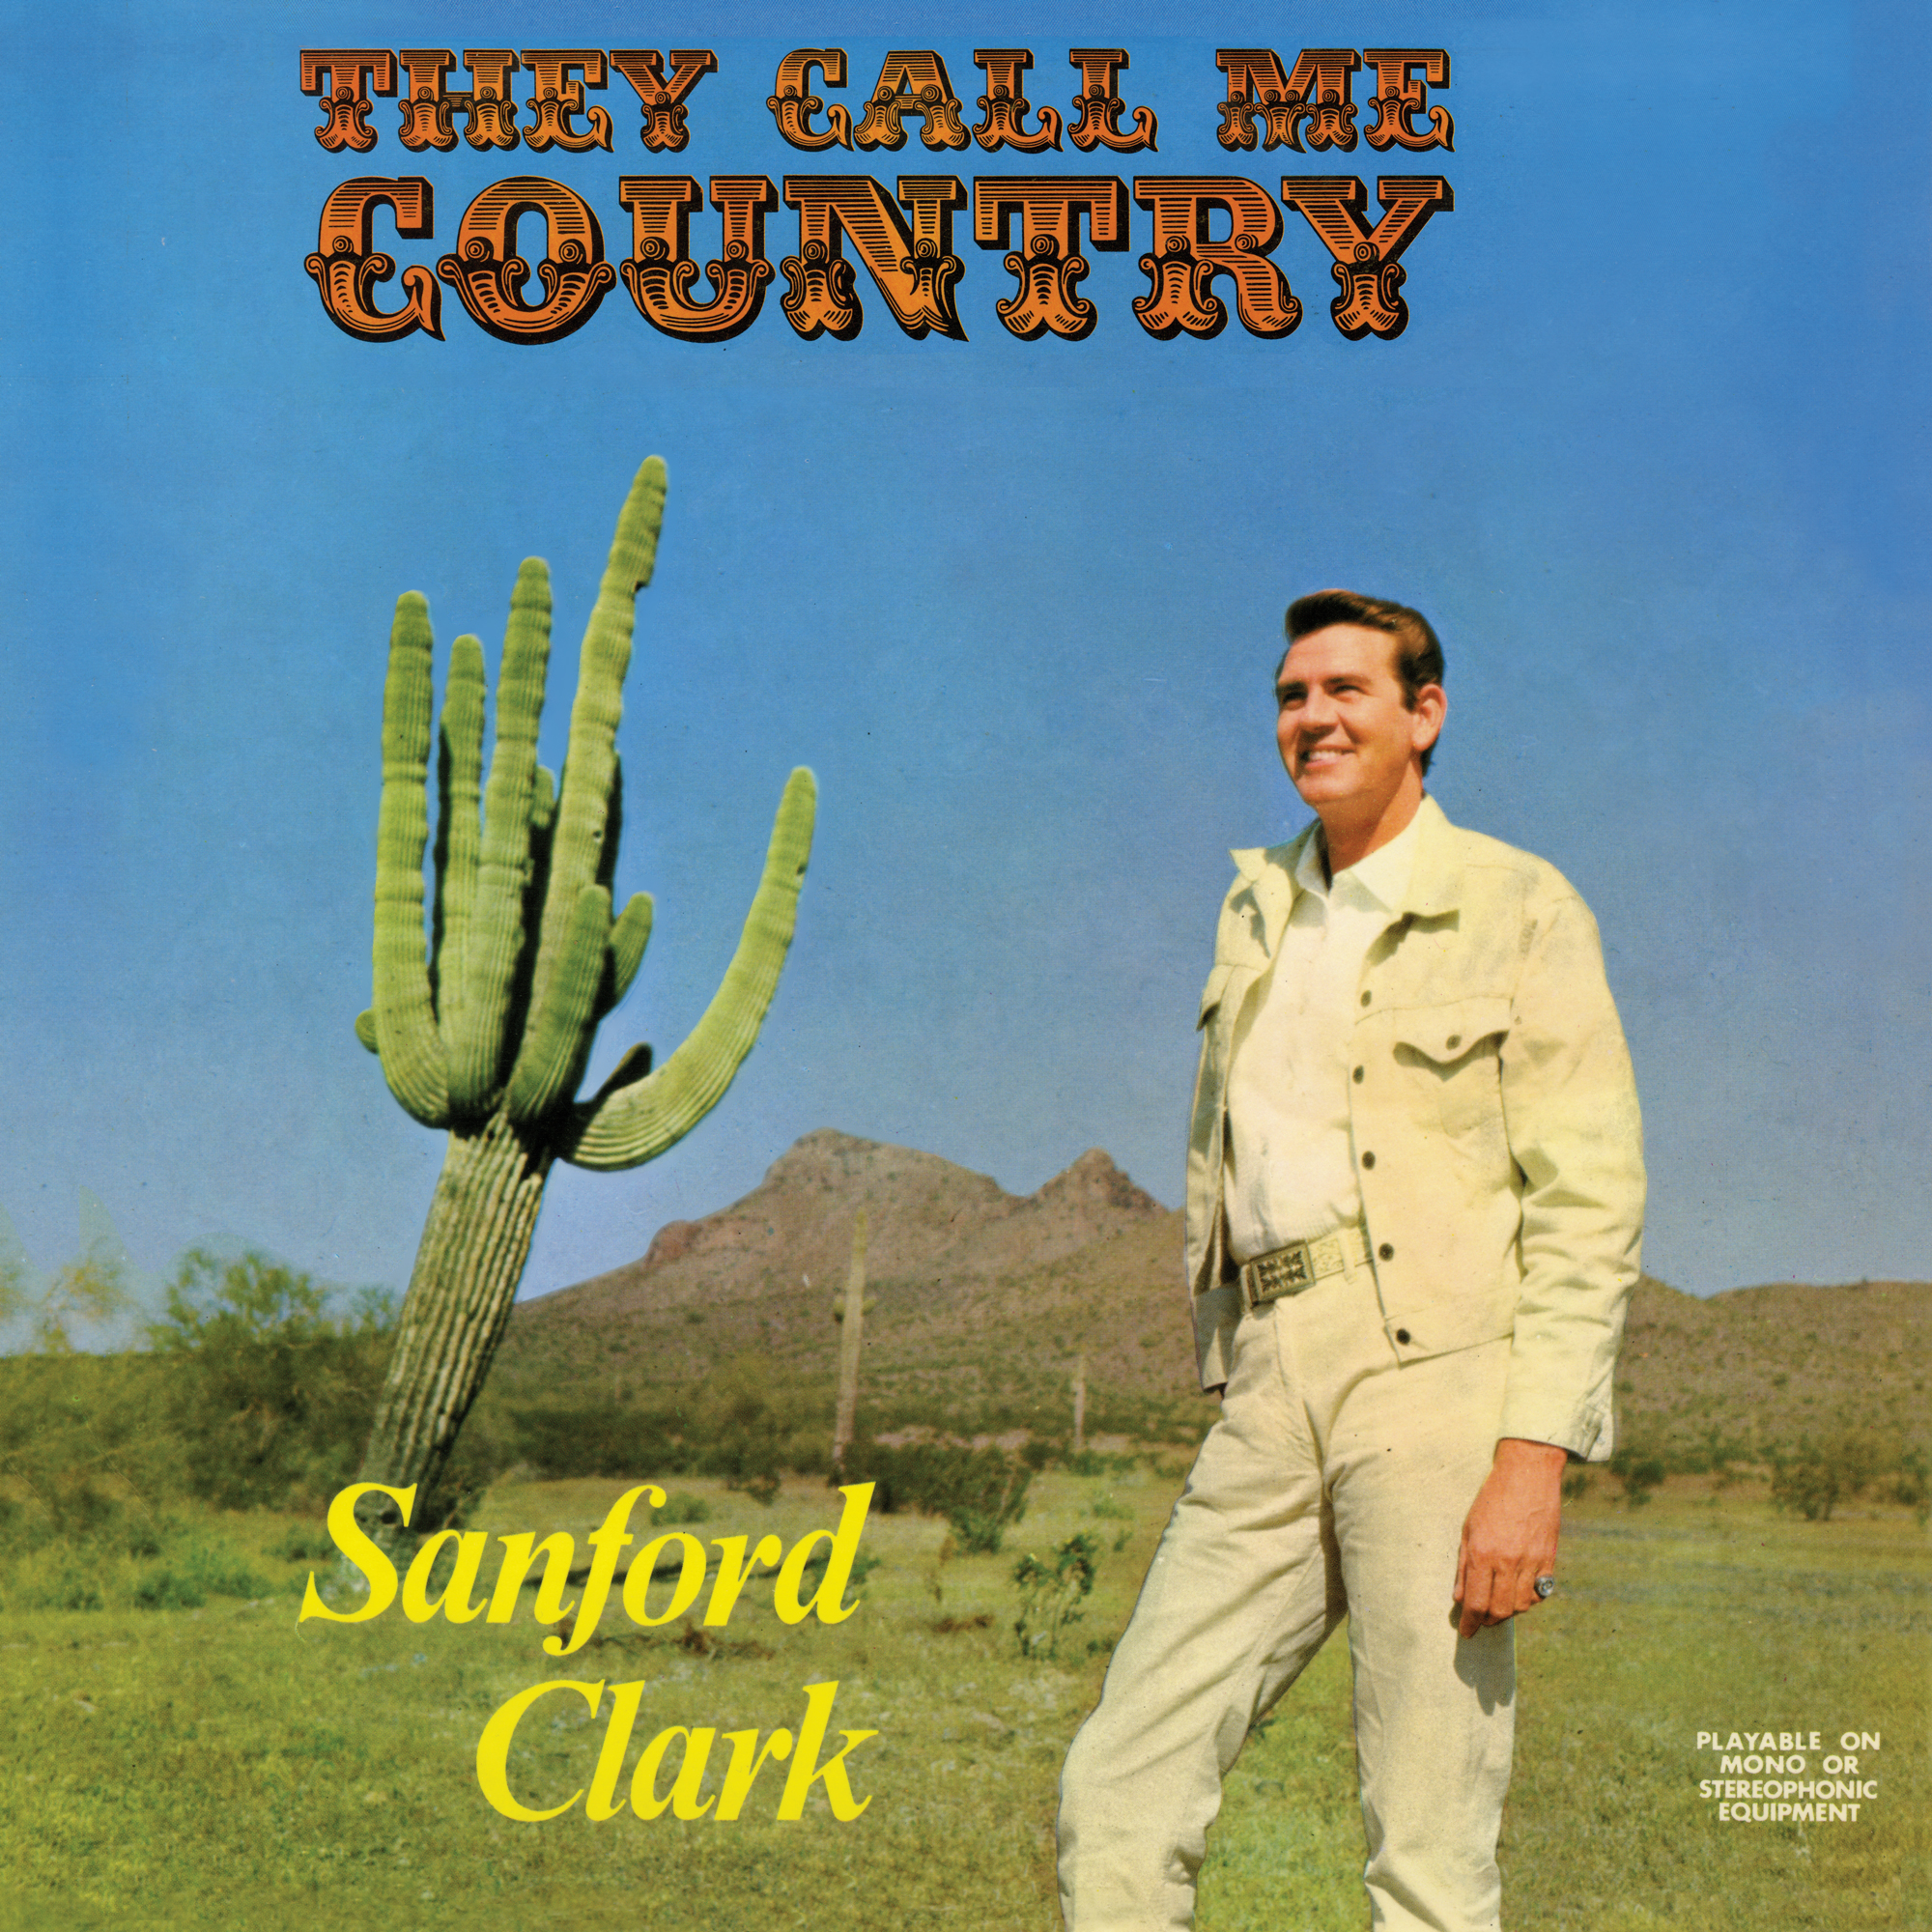 Sanford Clark - They Call Me Country  Release Date: July 12, 2019 Label: Numero Group  SERVICE: Mastering, Restoration NUMBER OF DISCS: 1 GENRE: Country FORMAT: LP